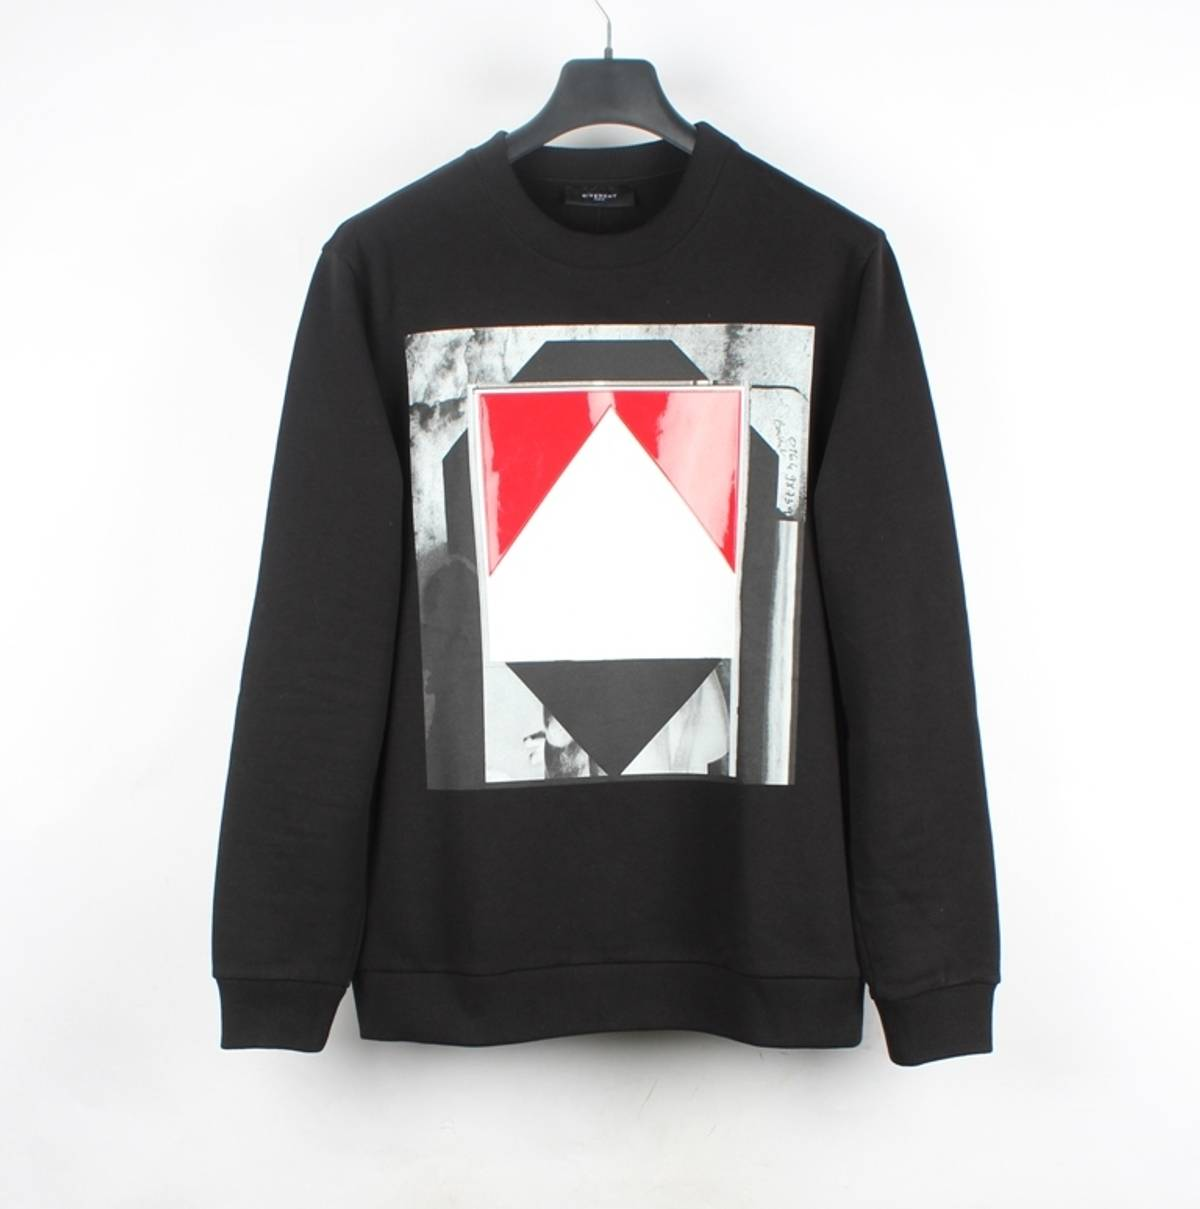 535f36b9f7f98 Givenchy ×. Givenchy Paris Crew Neck Men Top Jumper